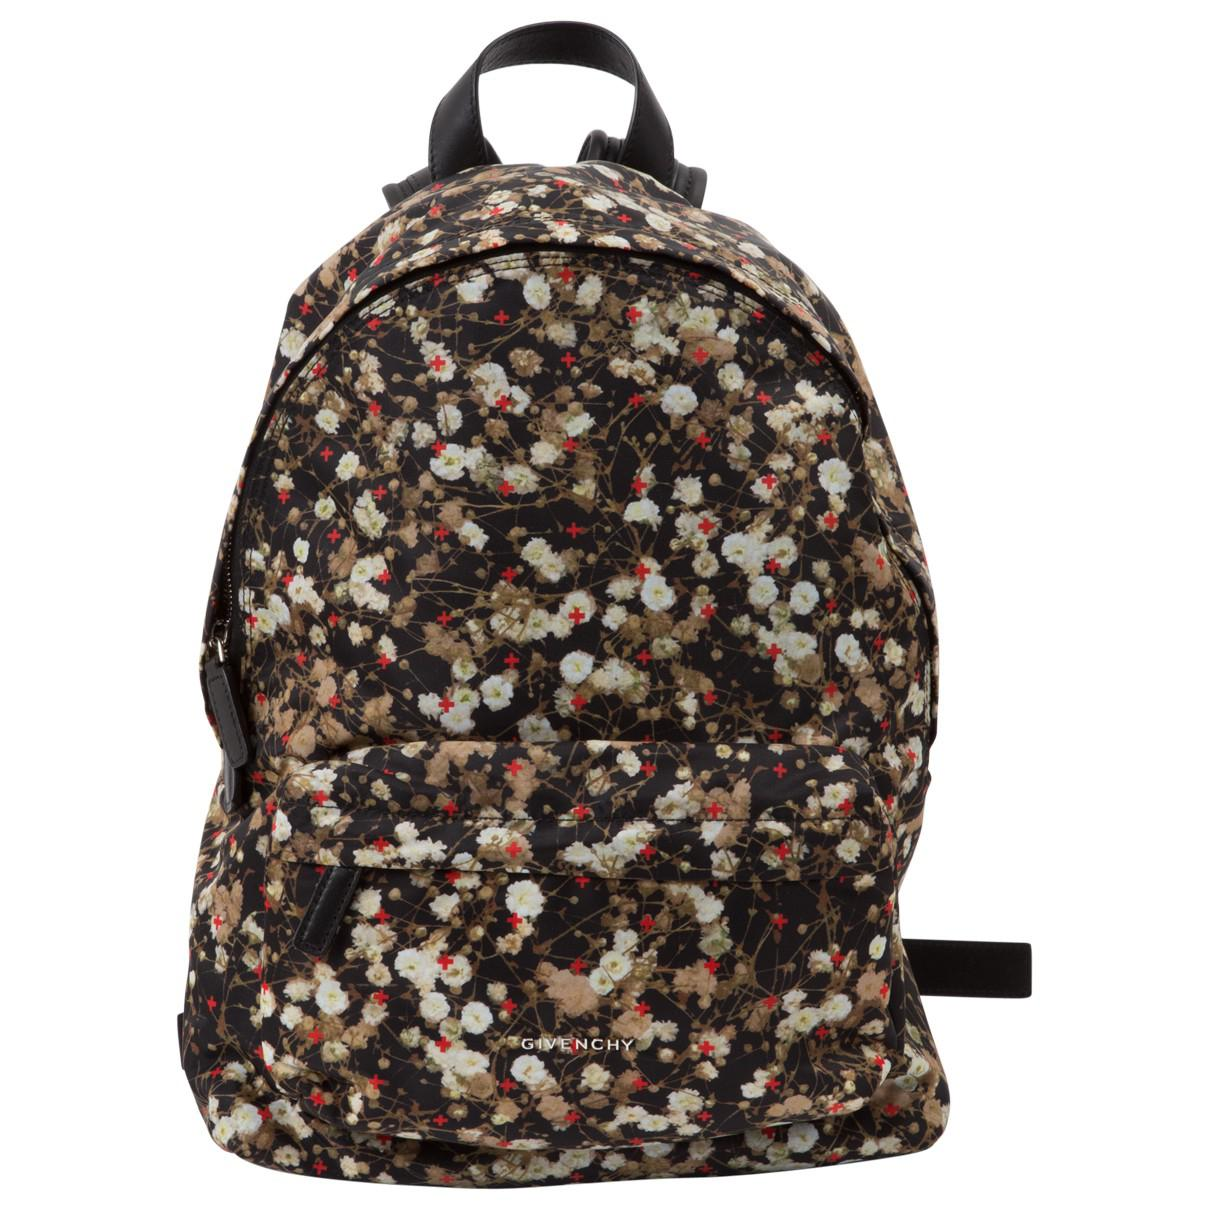 Givenchy Pre-owned - Cloth backpack HU2r8RSDT